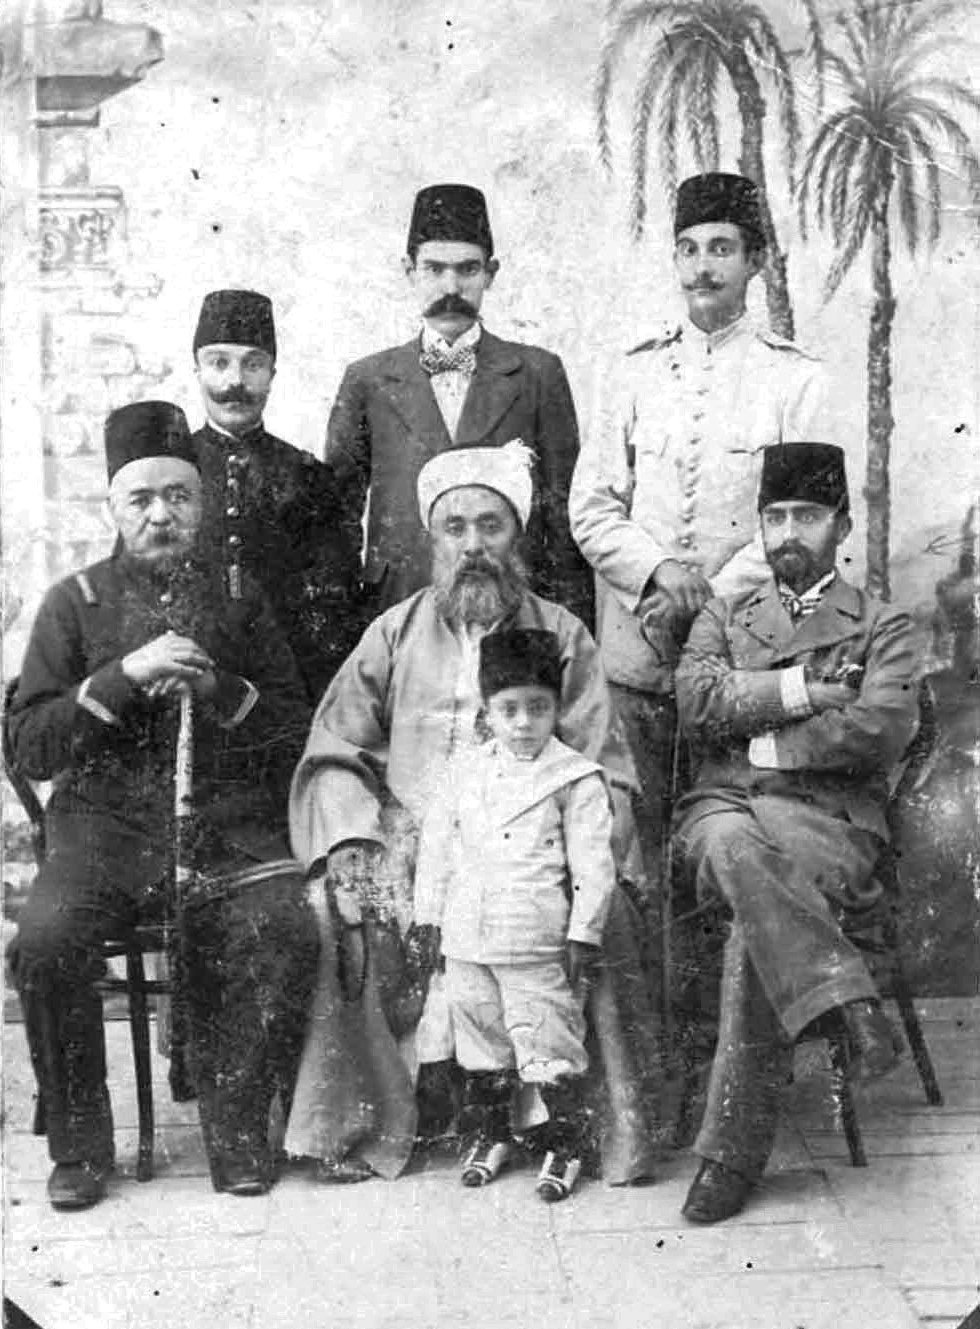 Ottoman scholar Abu Bakr Efendi (C) left a legacy among the Muslims living in South Africa during the 19th century.